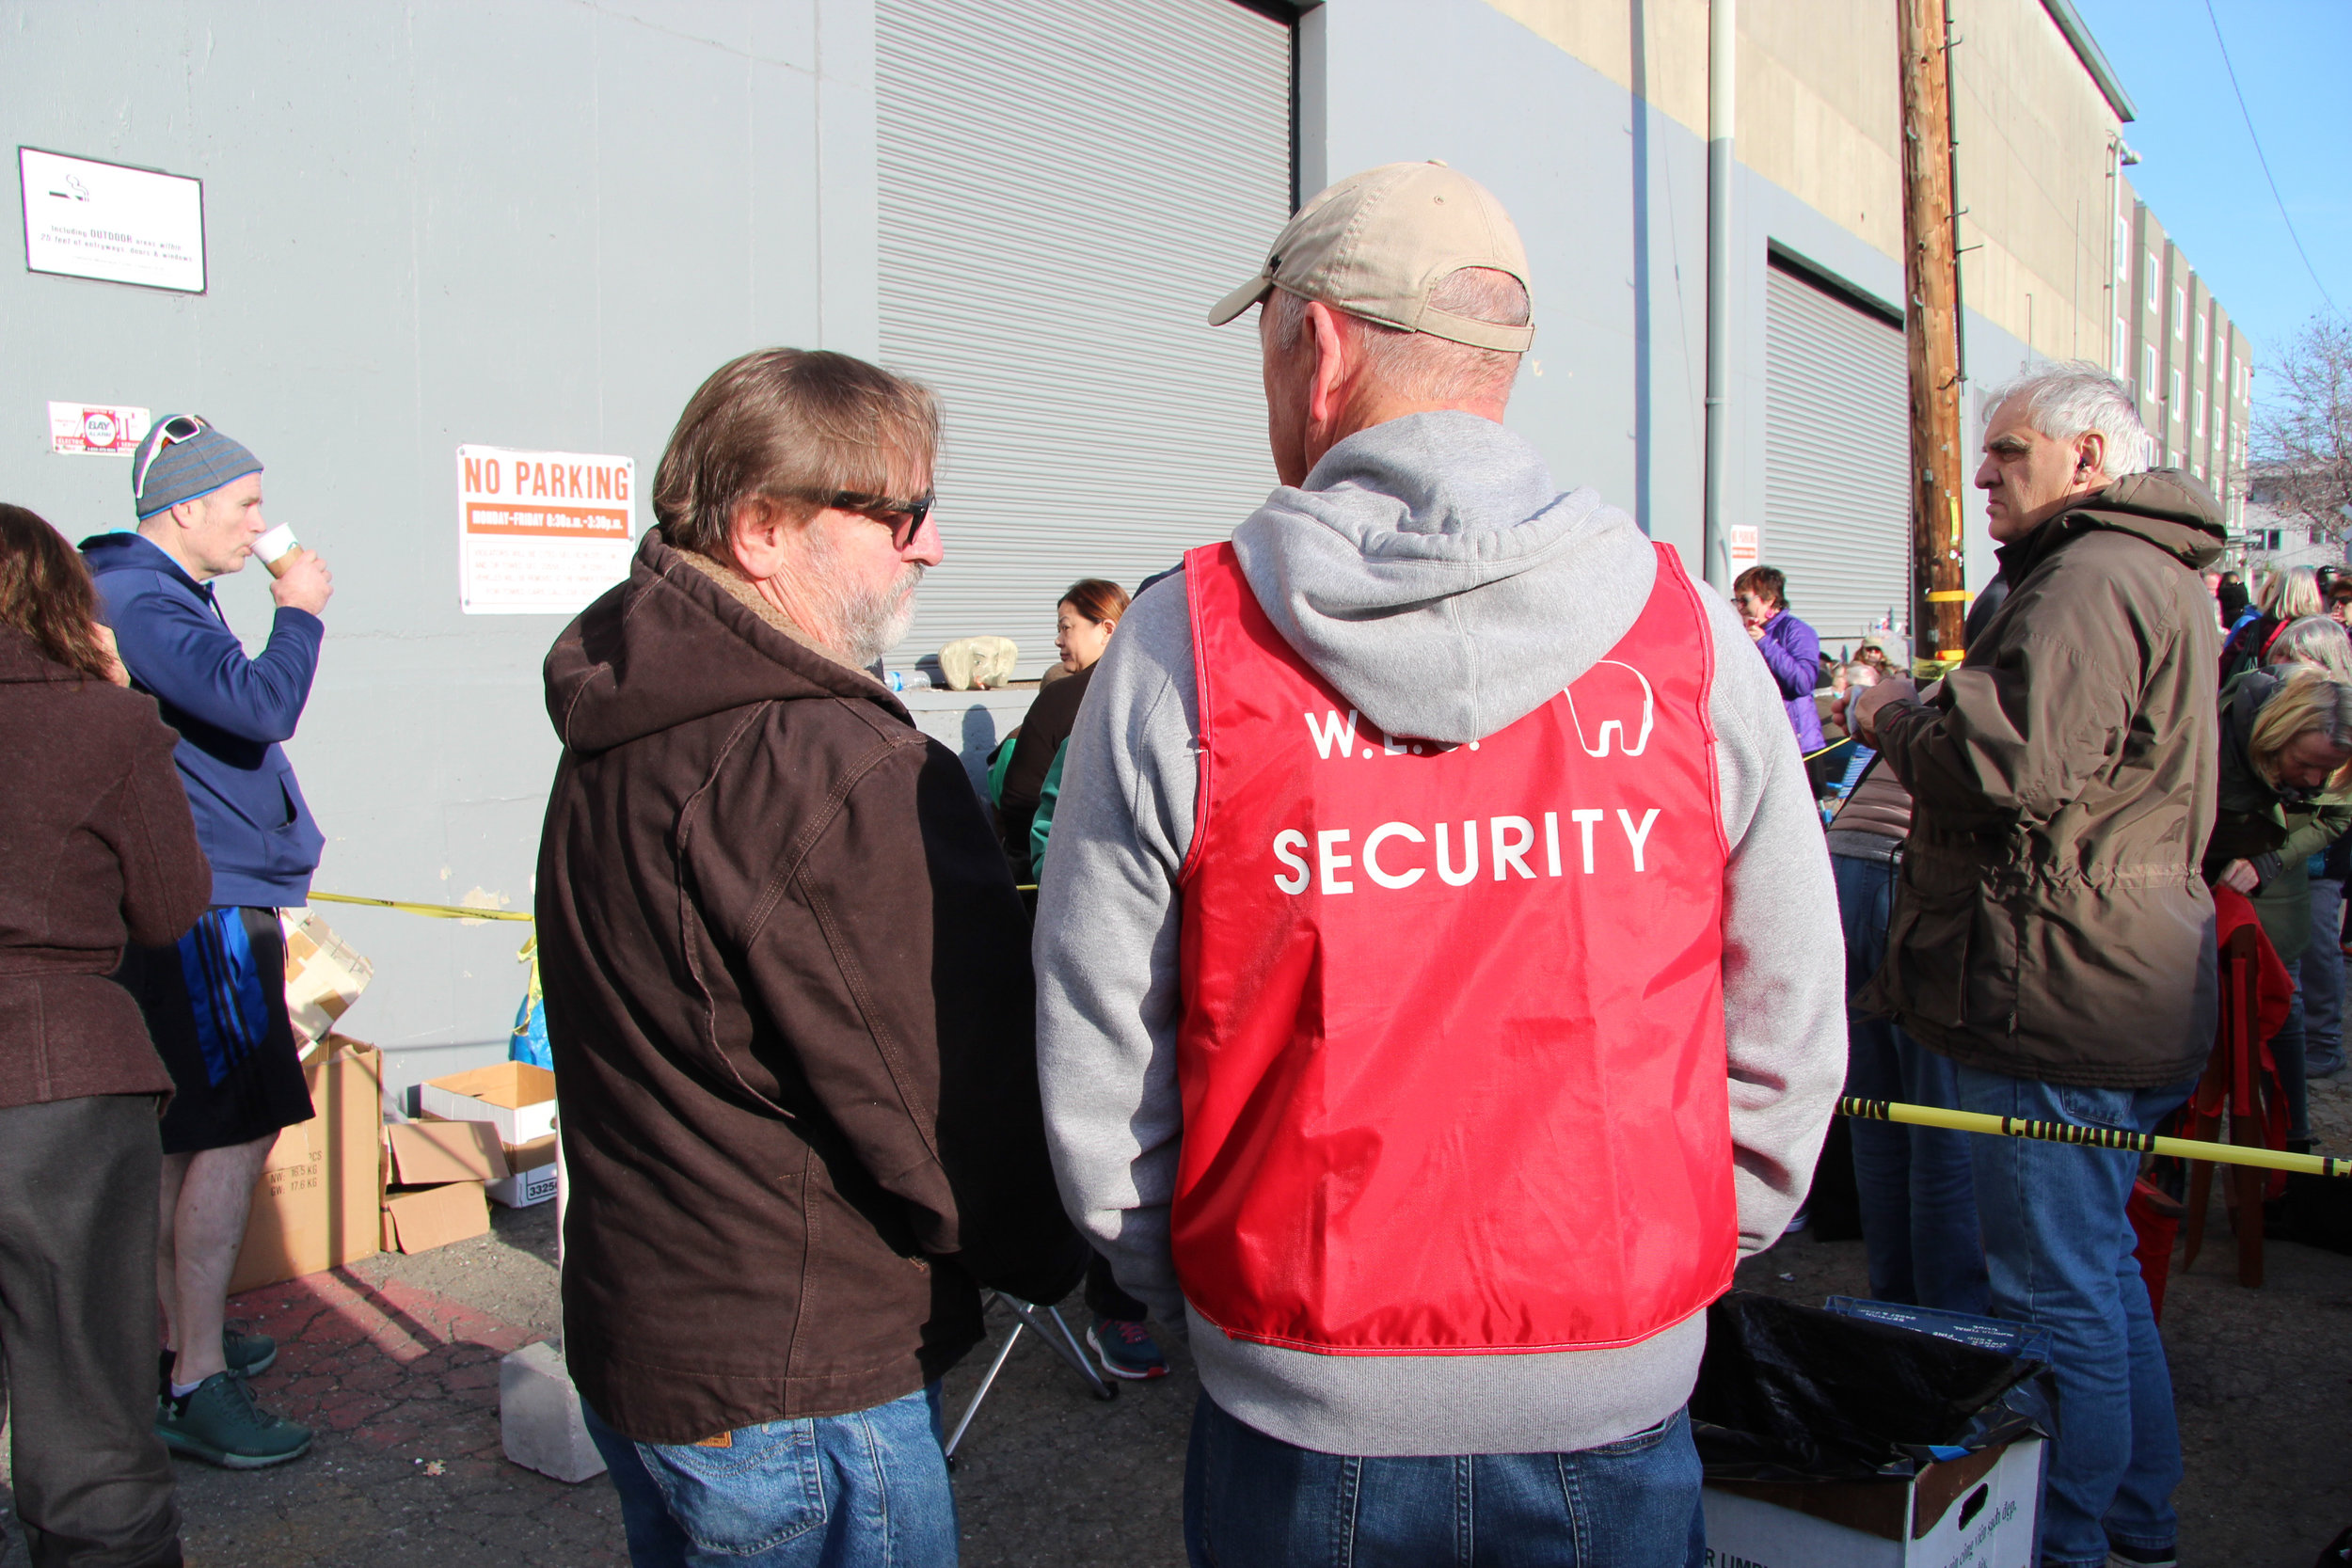 The White Elephant Sale has security to check wristbands and manage the flow of people.